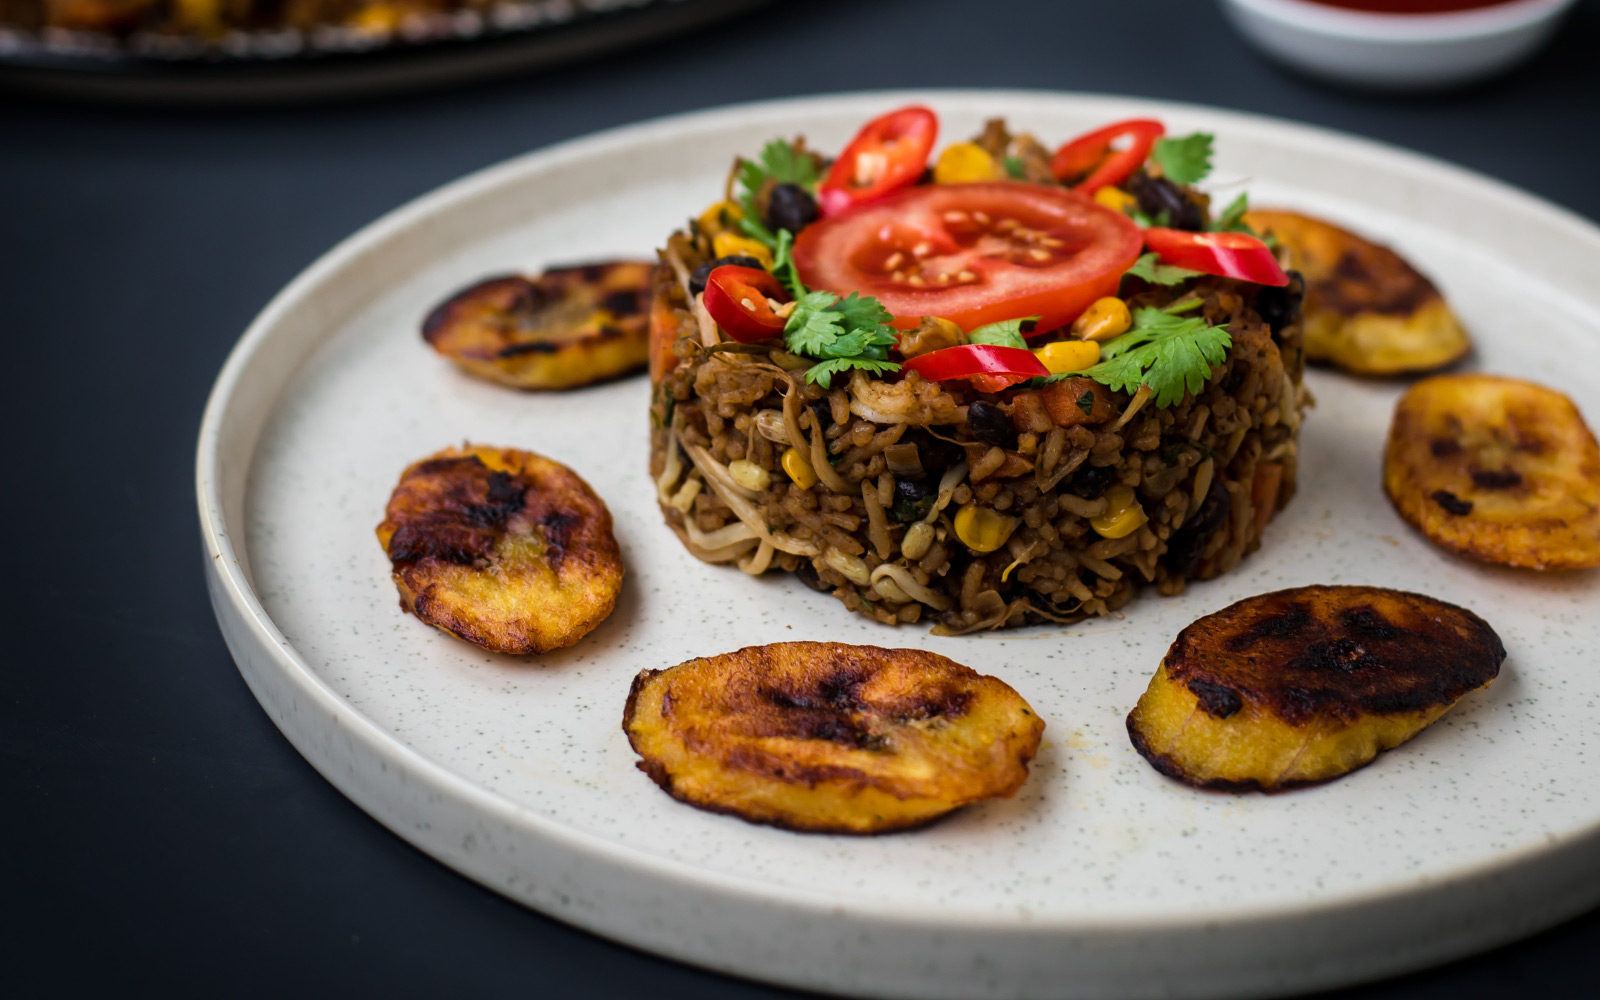 Vegan Gluten-Free Protein Fried Rice single serving with toppings